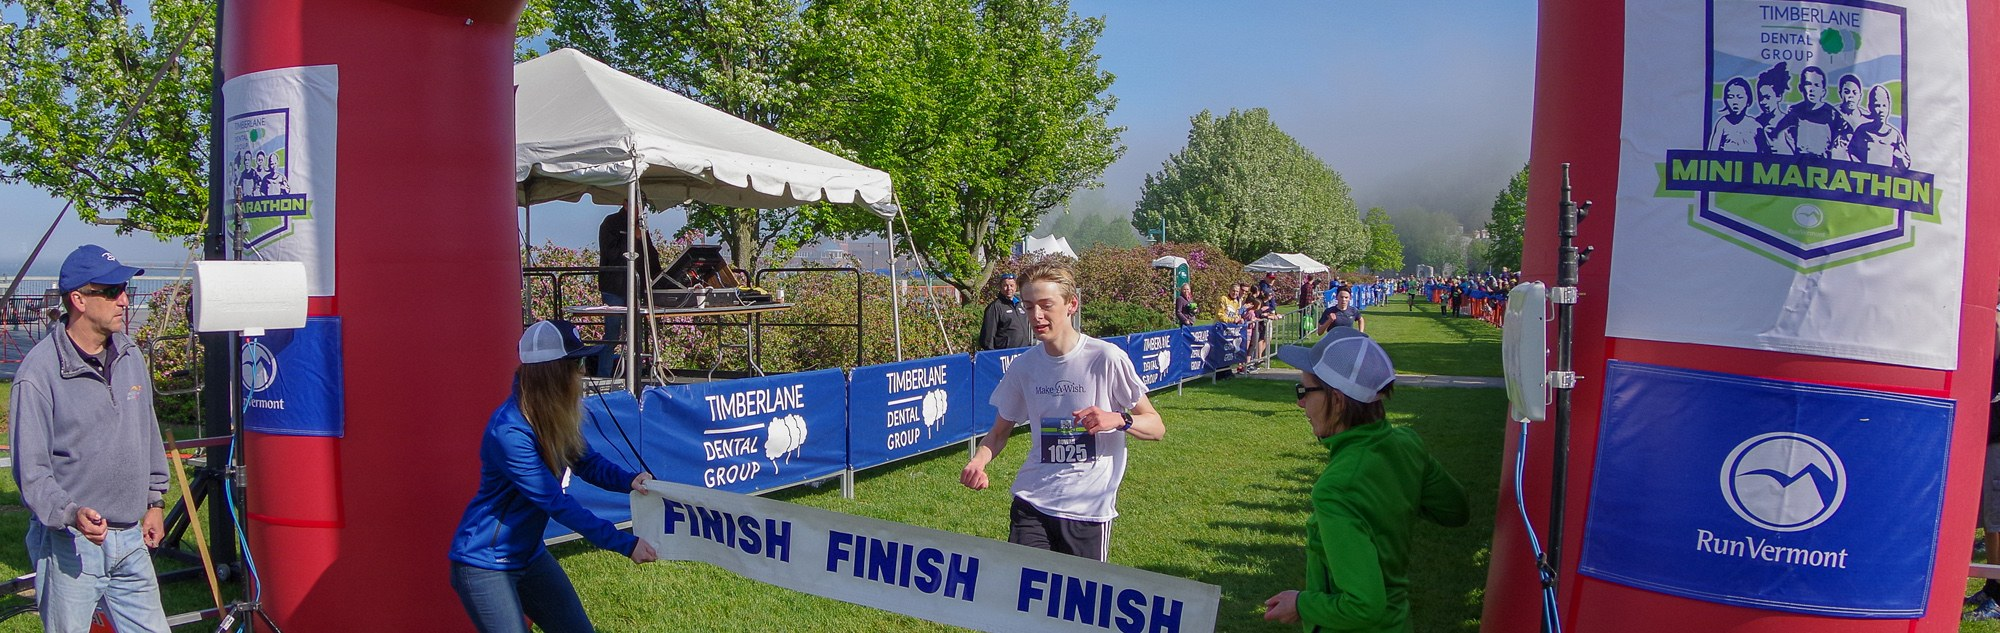 a Boy crossing the finish line